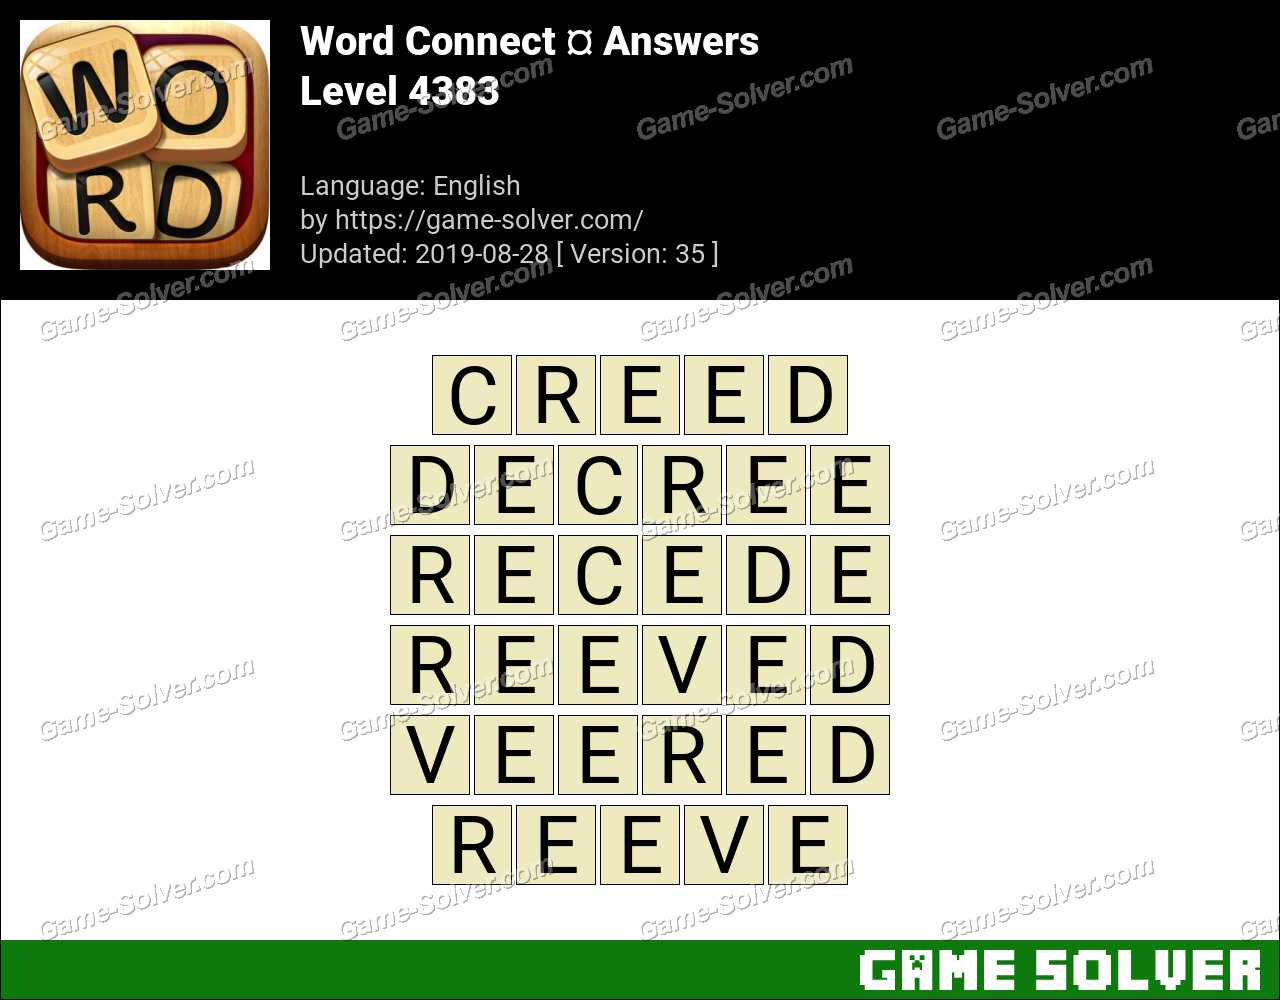 Word Connect Level 4383 Answers